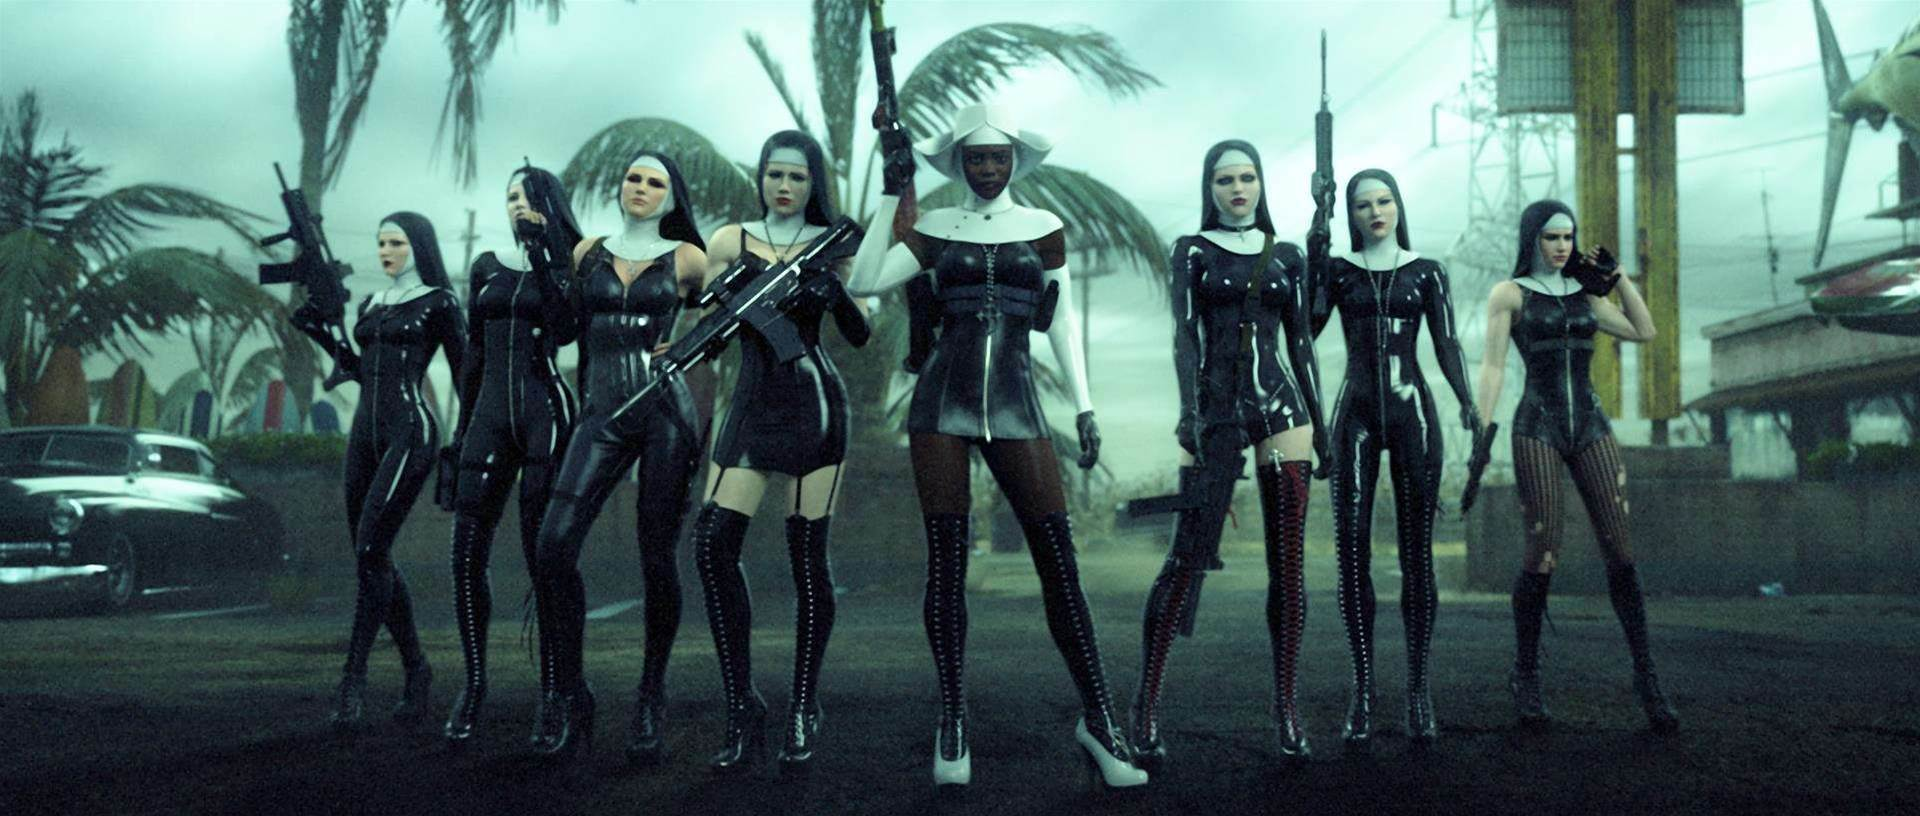 Allow me to retort: Hitman, Tarantino, and sexualisation in games